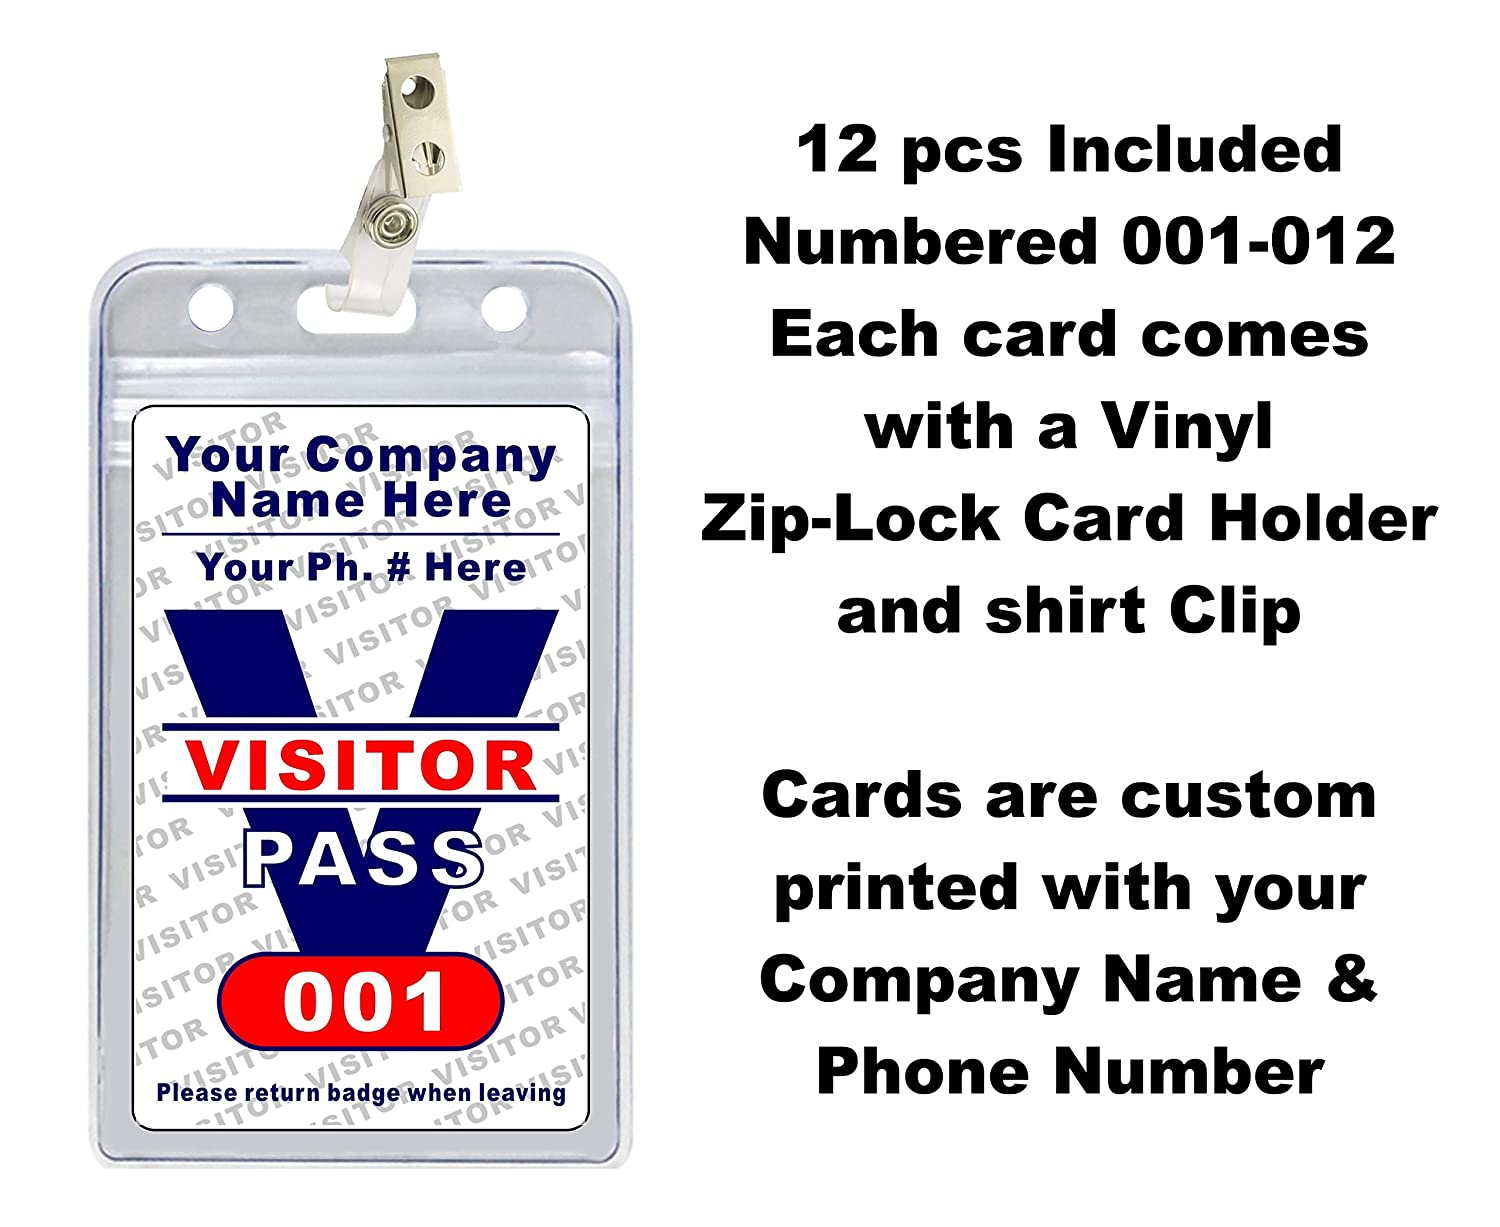 Visitor Pass Badges (12 pcs) - PVC Plastic {Custom Printed with Your  Company Name} 12 pcs - Badge Holders & Clips Included